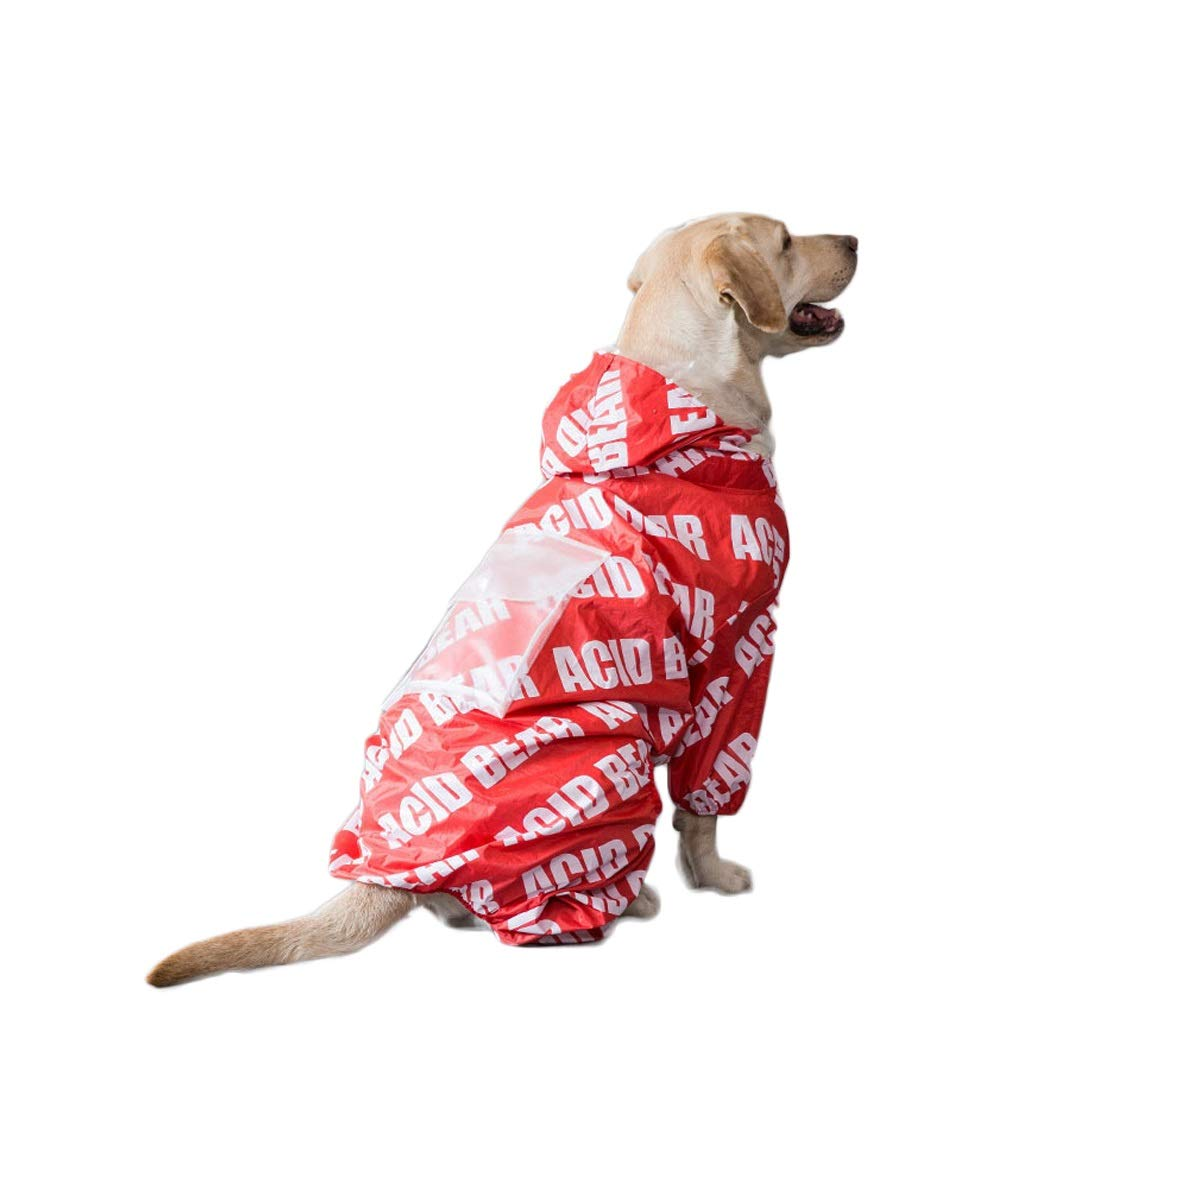 Red M Red M Qingbaotong Dog Raincoat Dog Clothes Waterproof Four-Legged Large Dog Labrador golden Retriever Pet Supplies Black Red S M L XL XXL High Strength Waterproof (color   Red, Size   M)